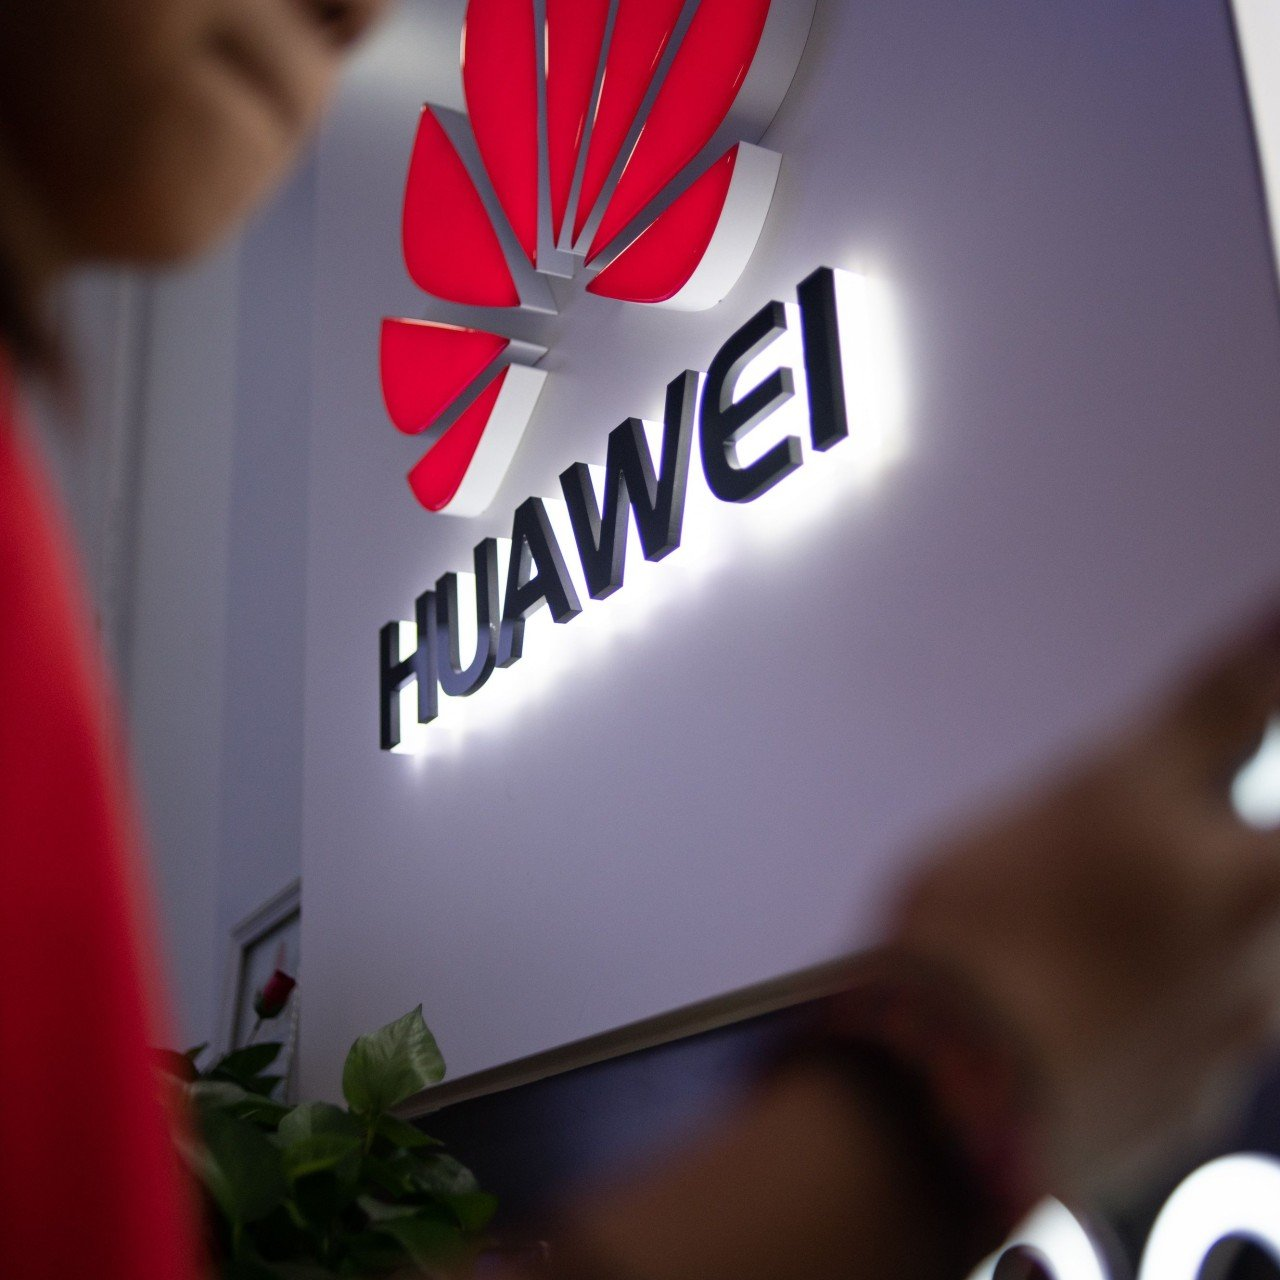 Huawei's position as 5G chip maker strengthened after Apple